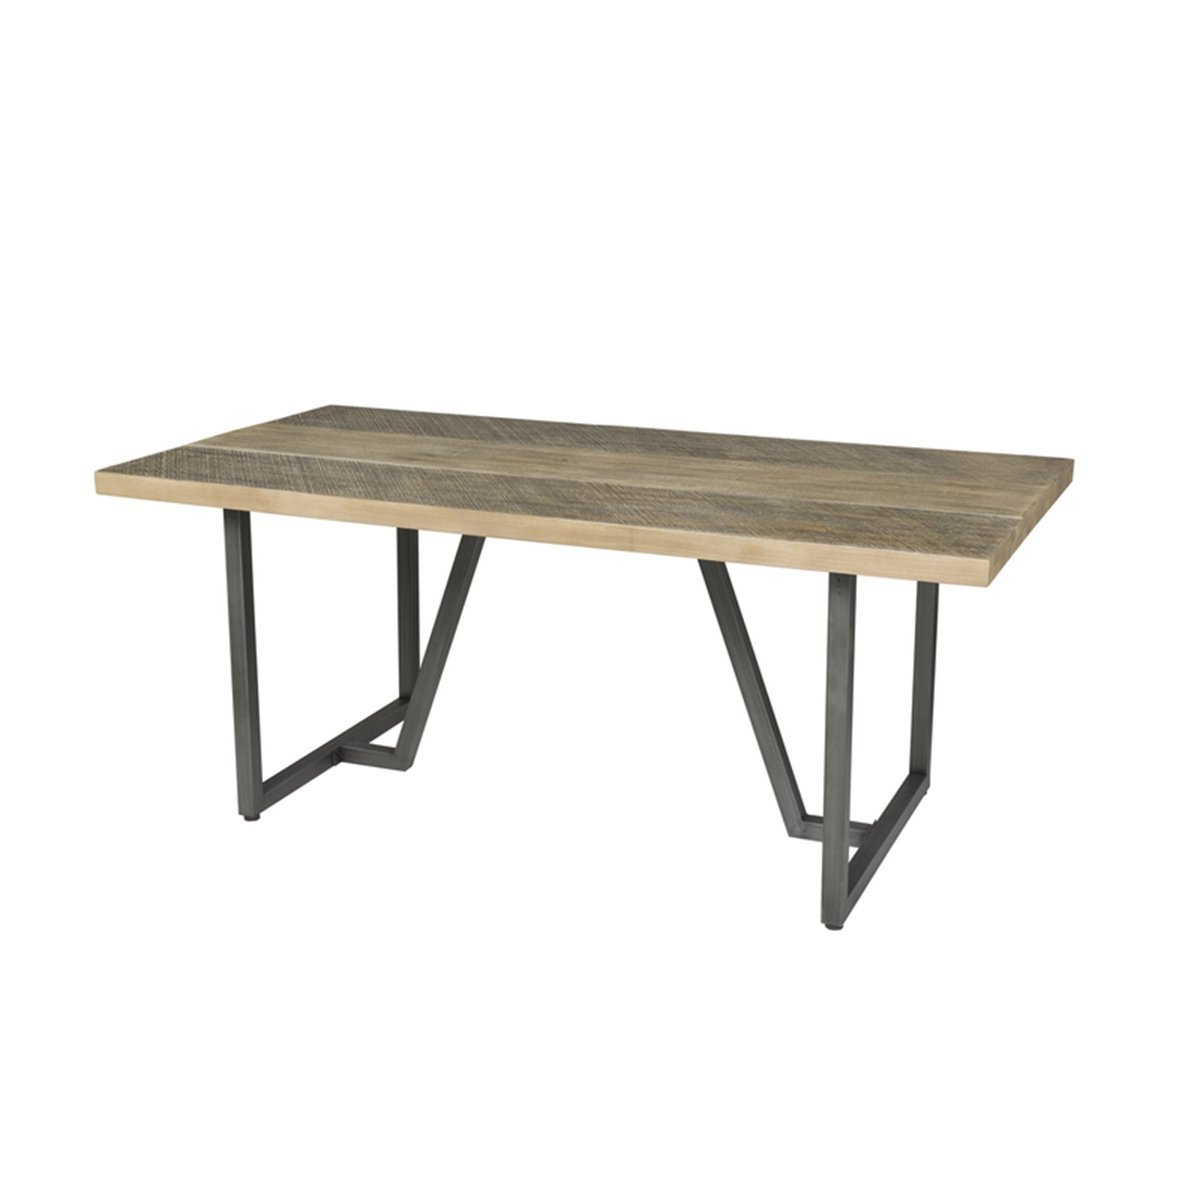 METRO HAVANA DINING TABLE - TWO TONE - Showhome Furniture